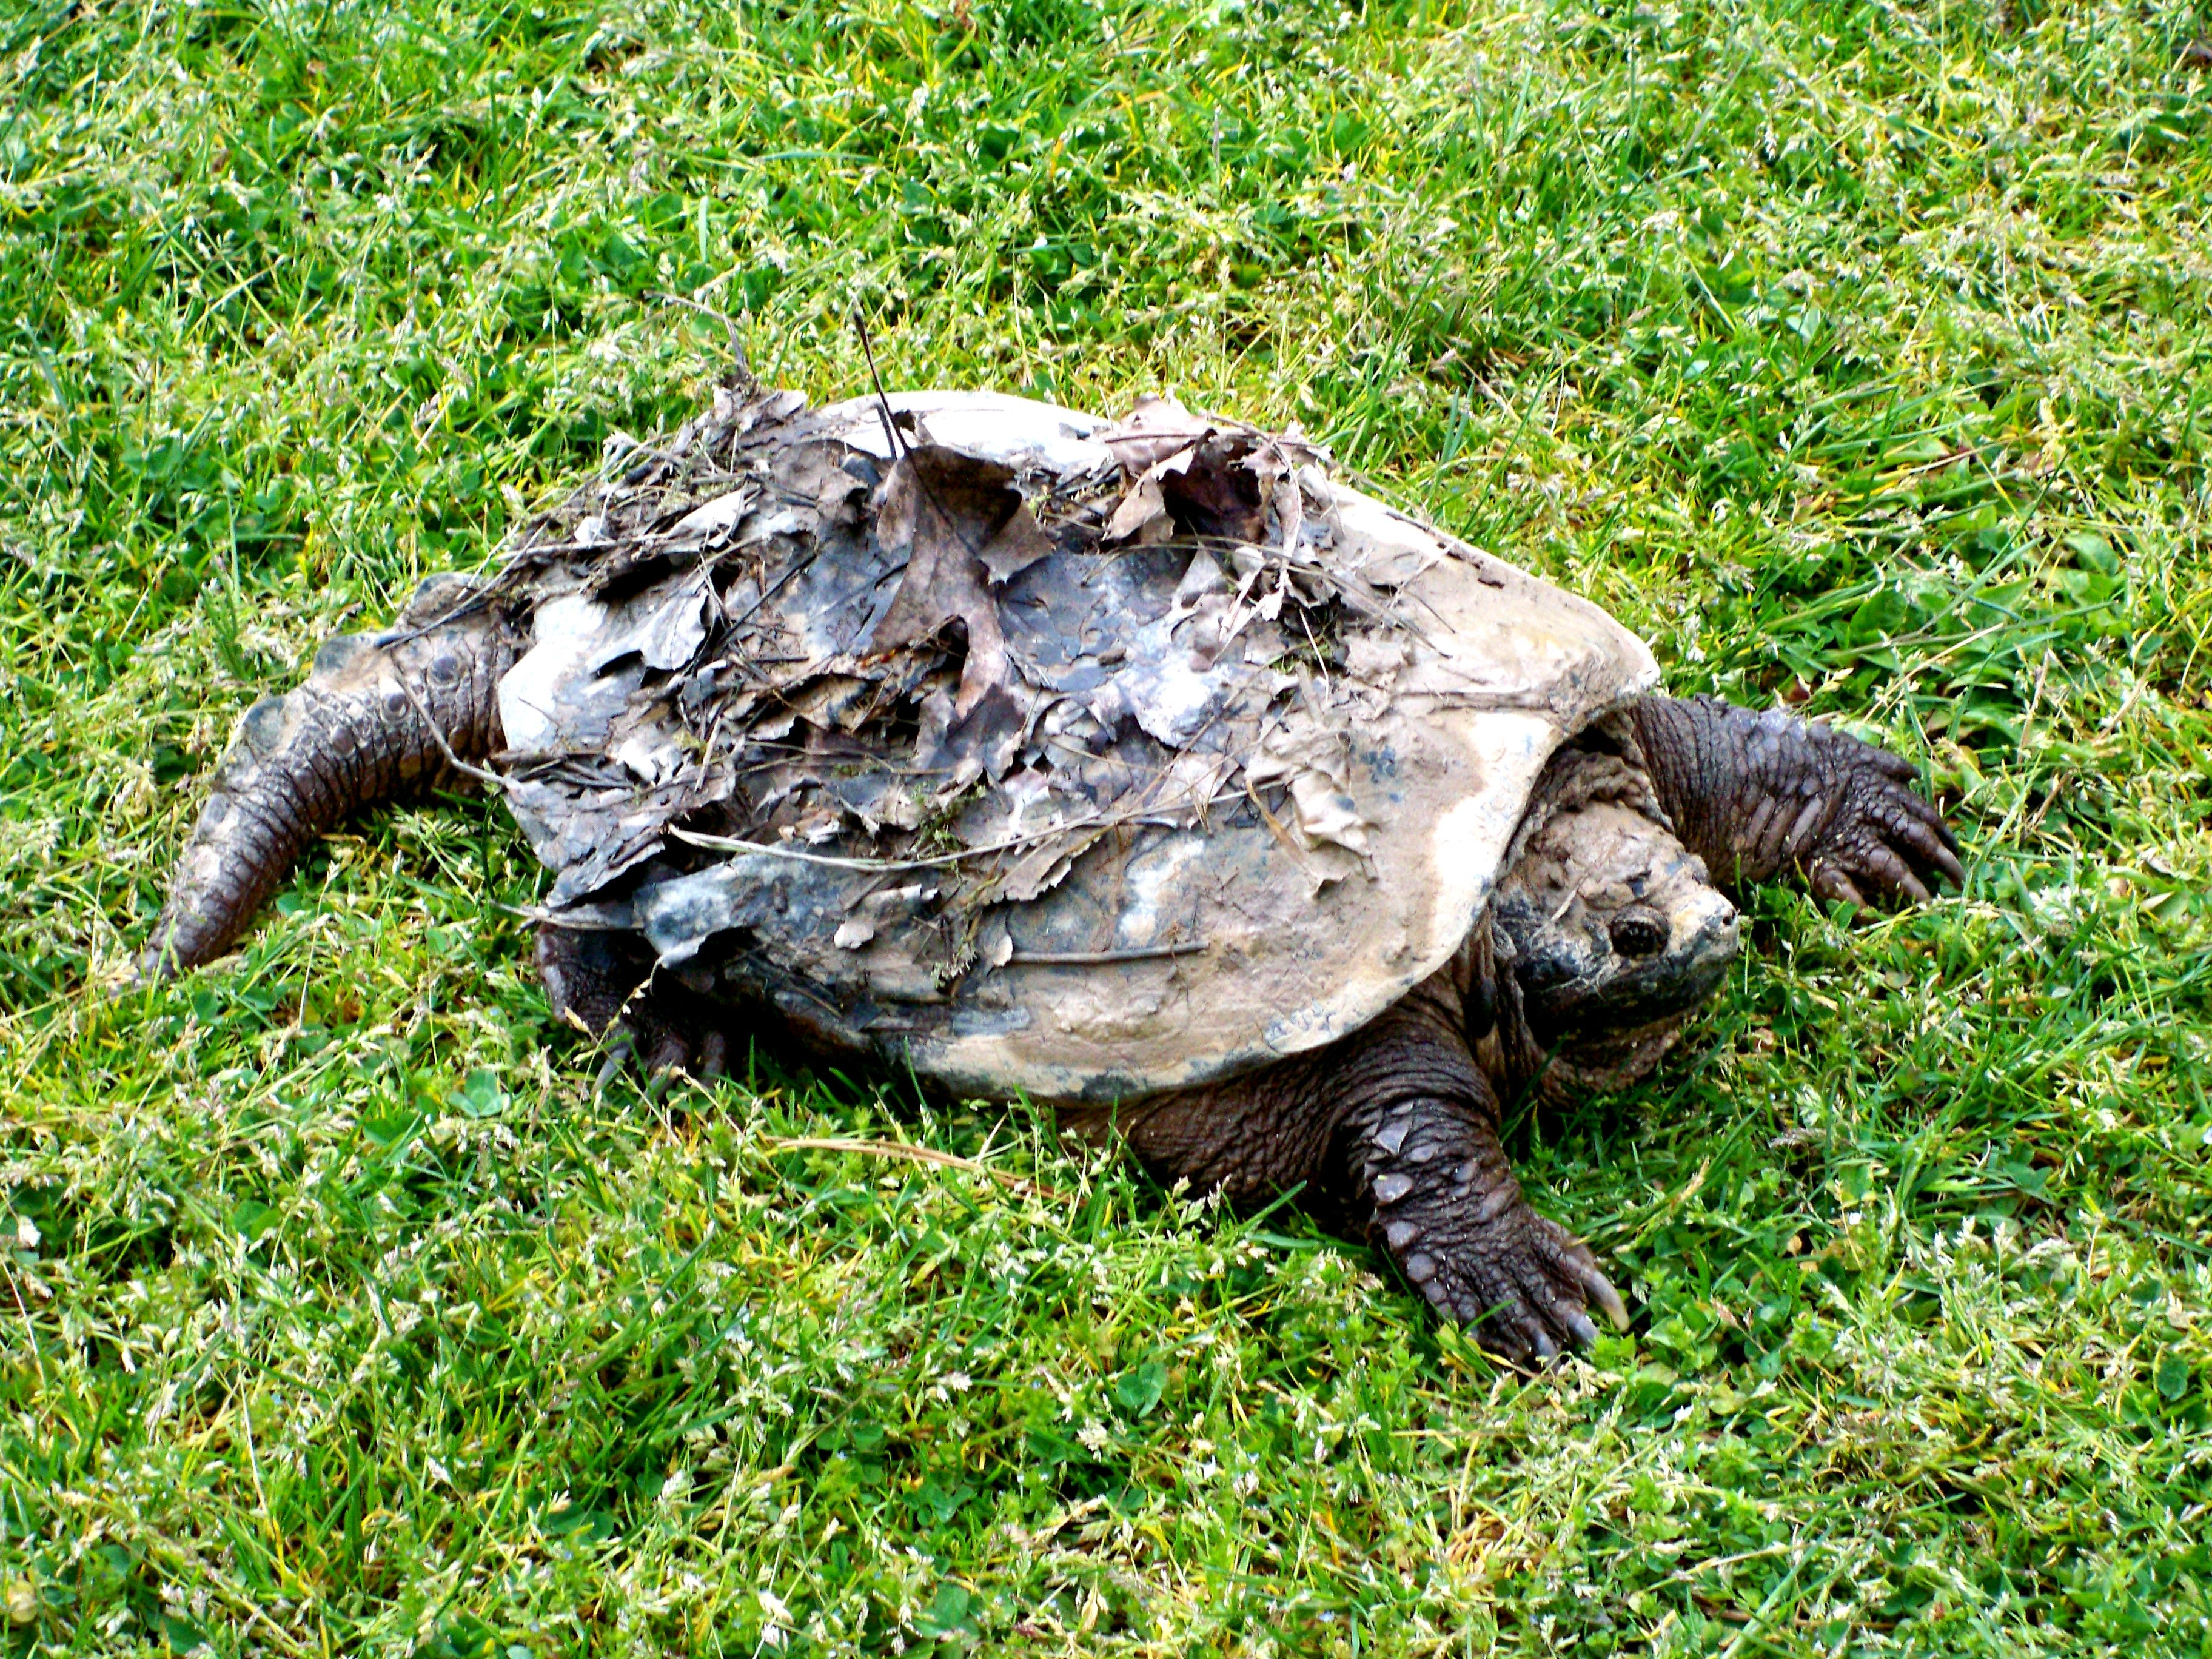 A Big Snapping Turtle We Found Roaming The Campground Today 5 1